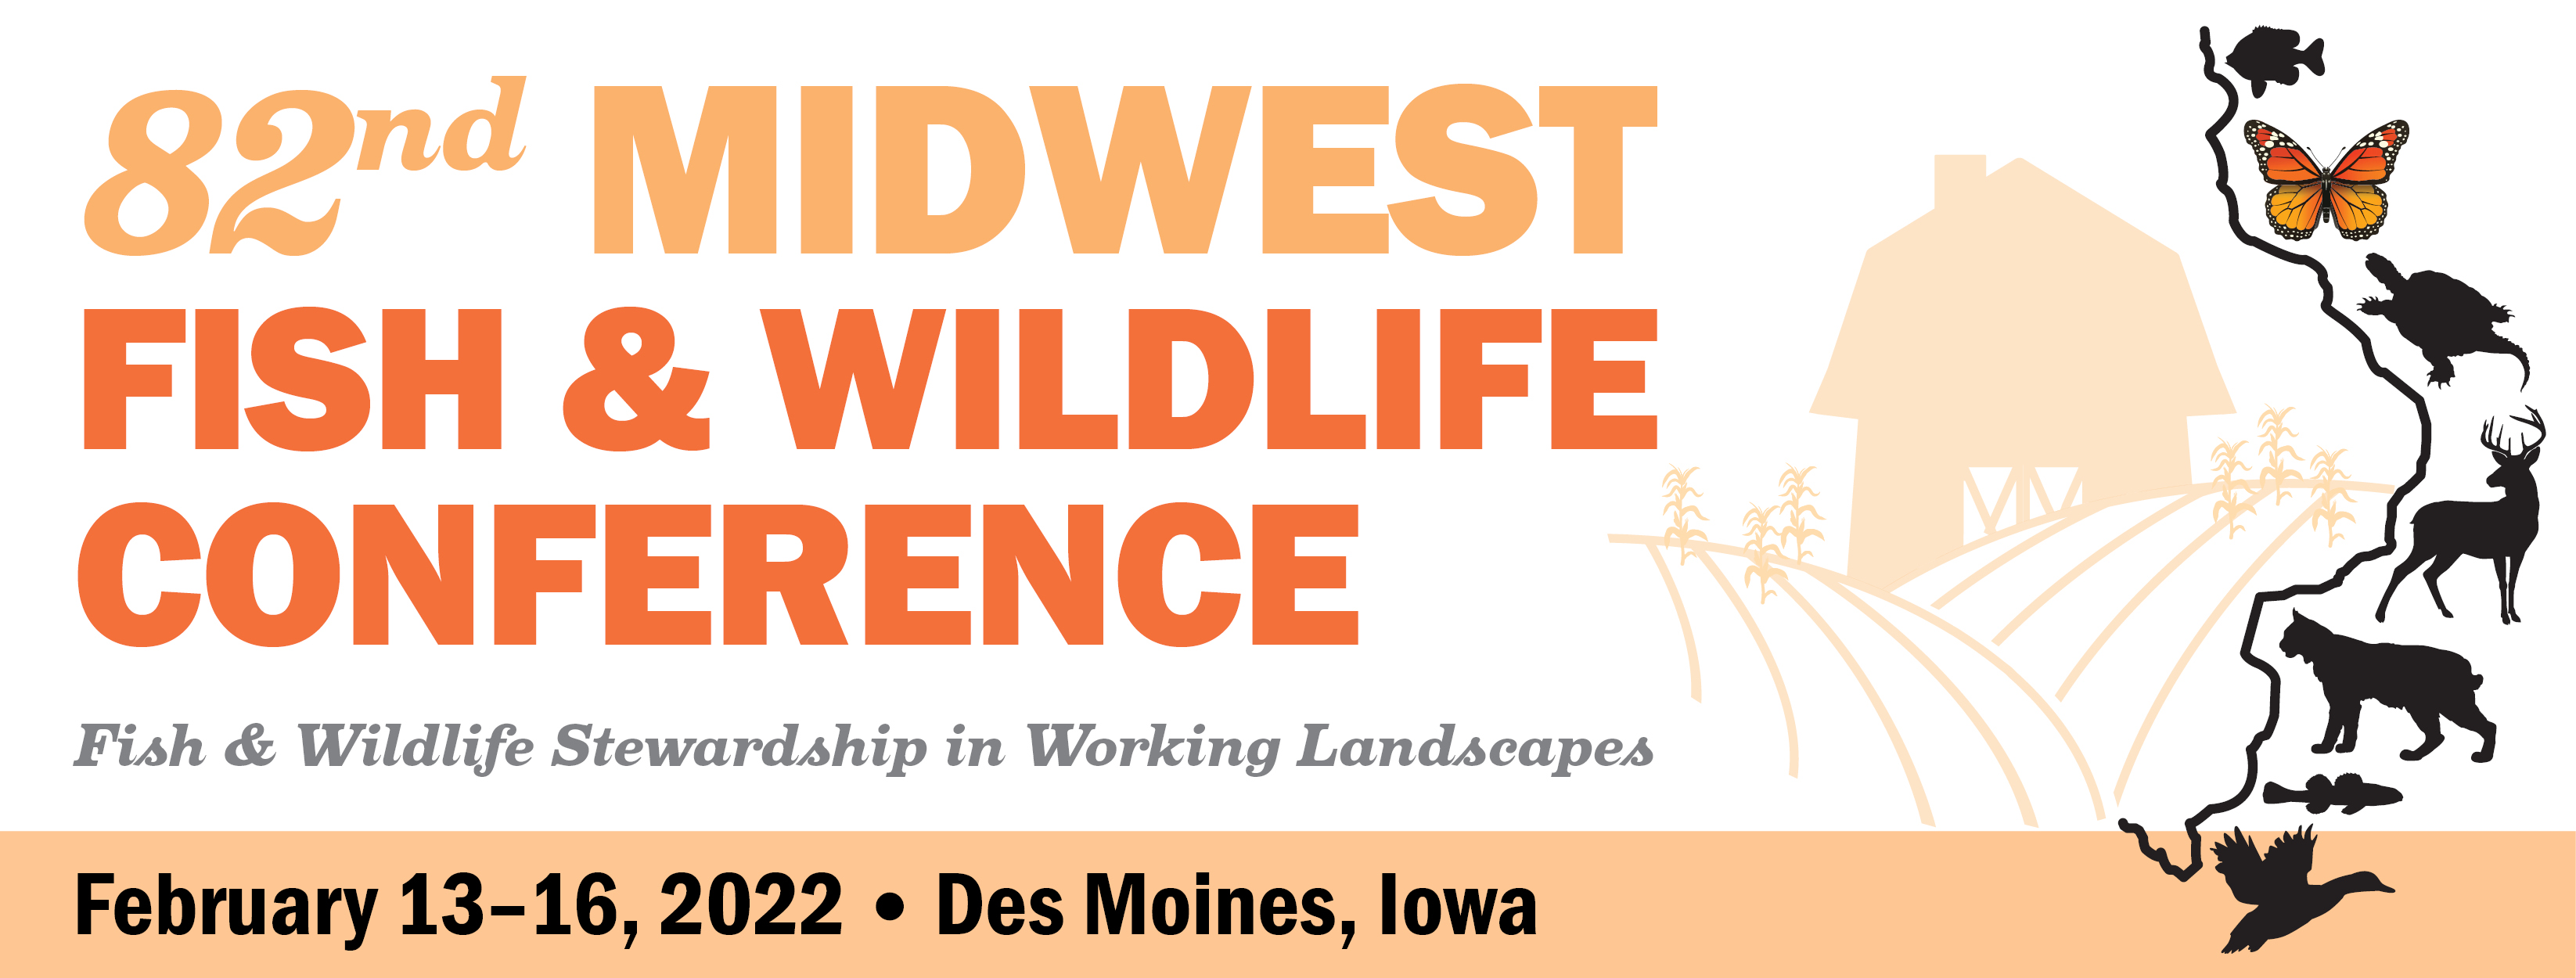 Midwest Fish & Wildlife Conference Header